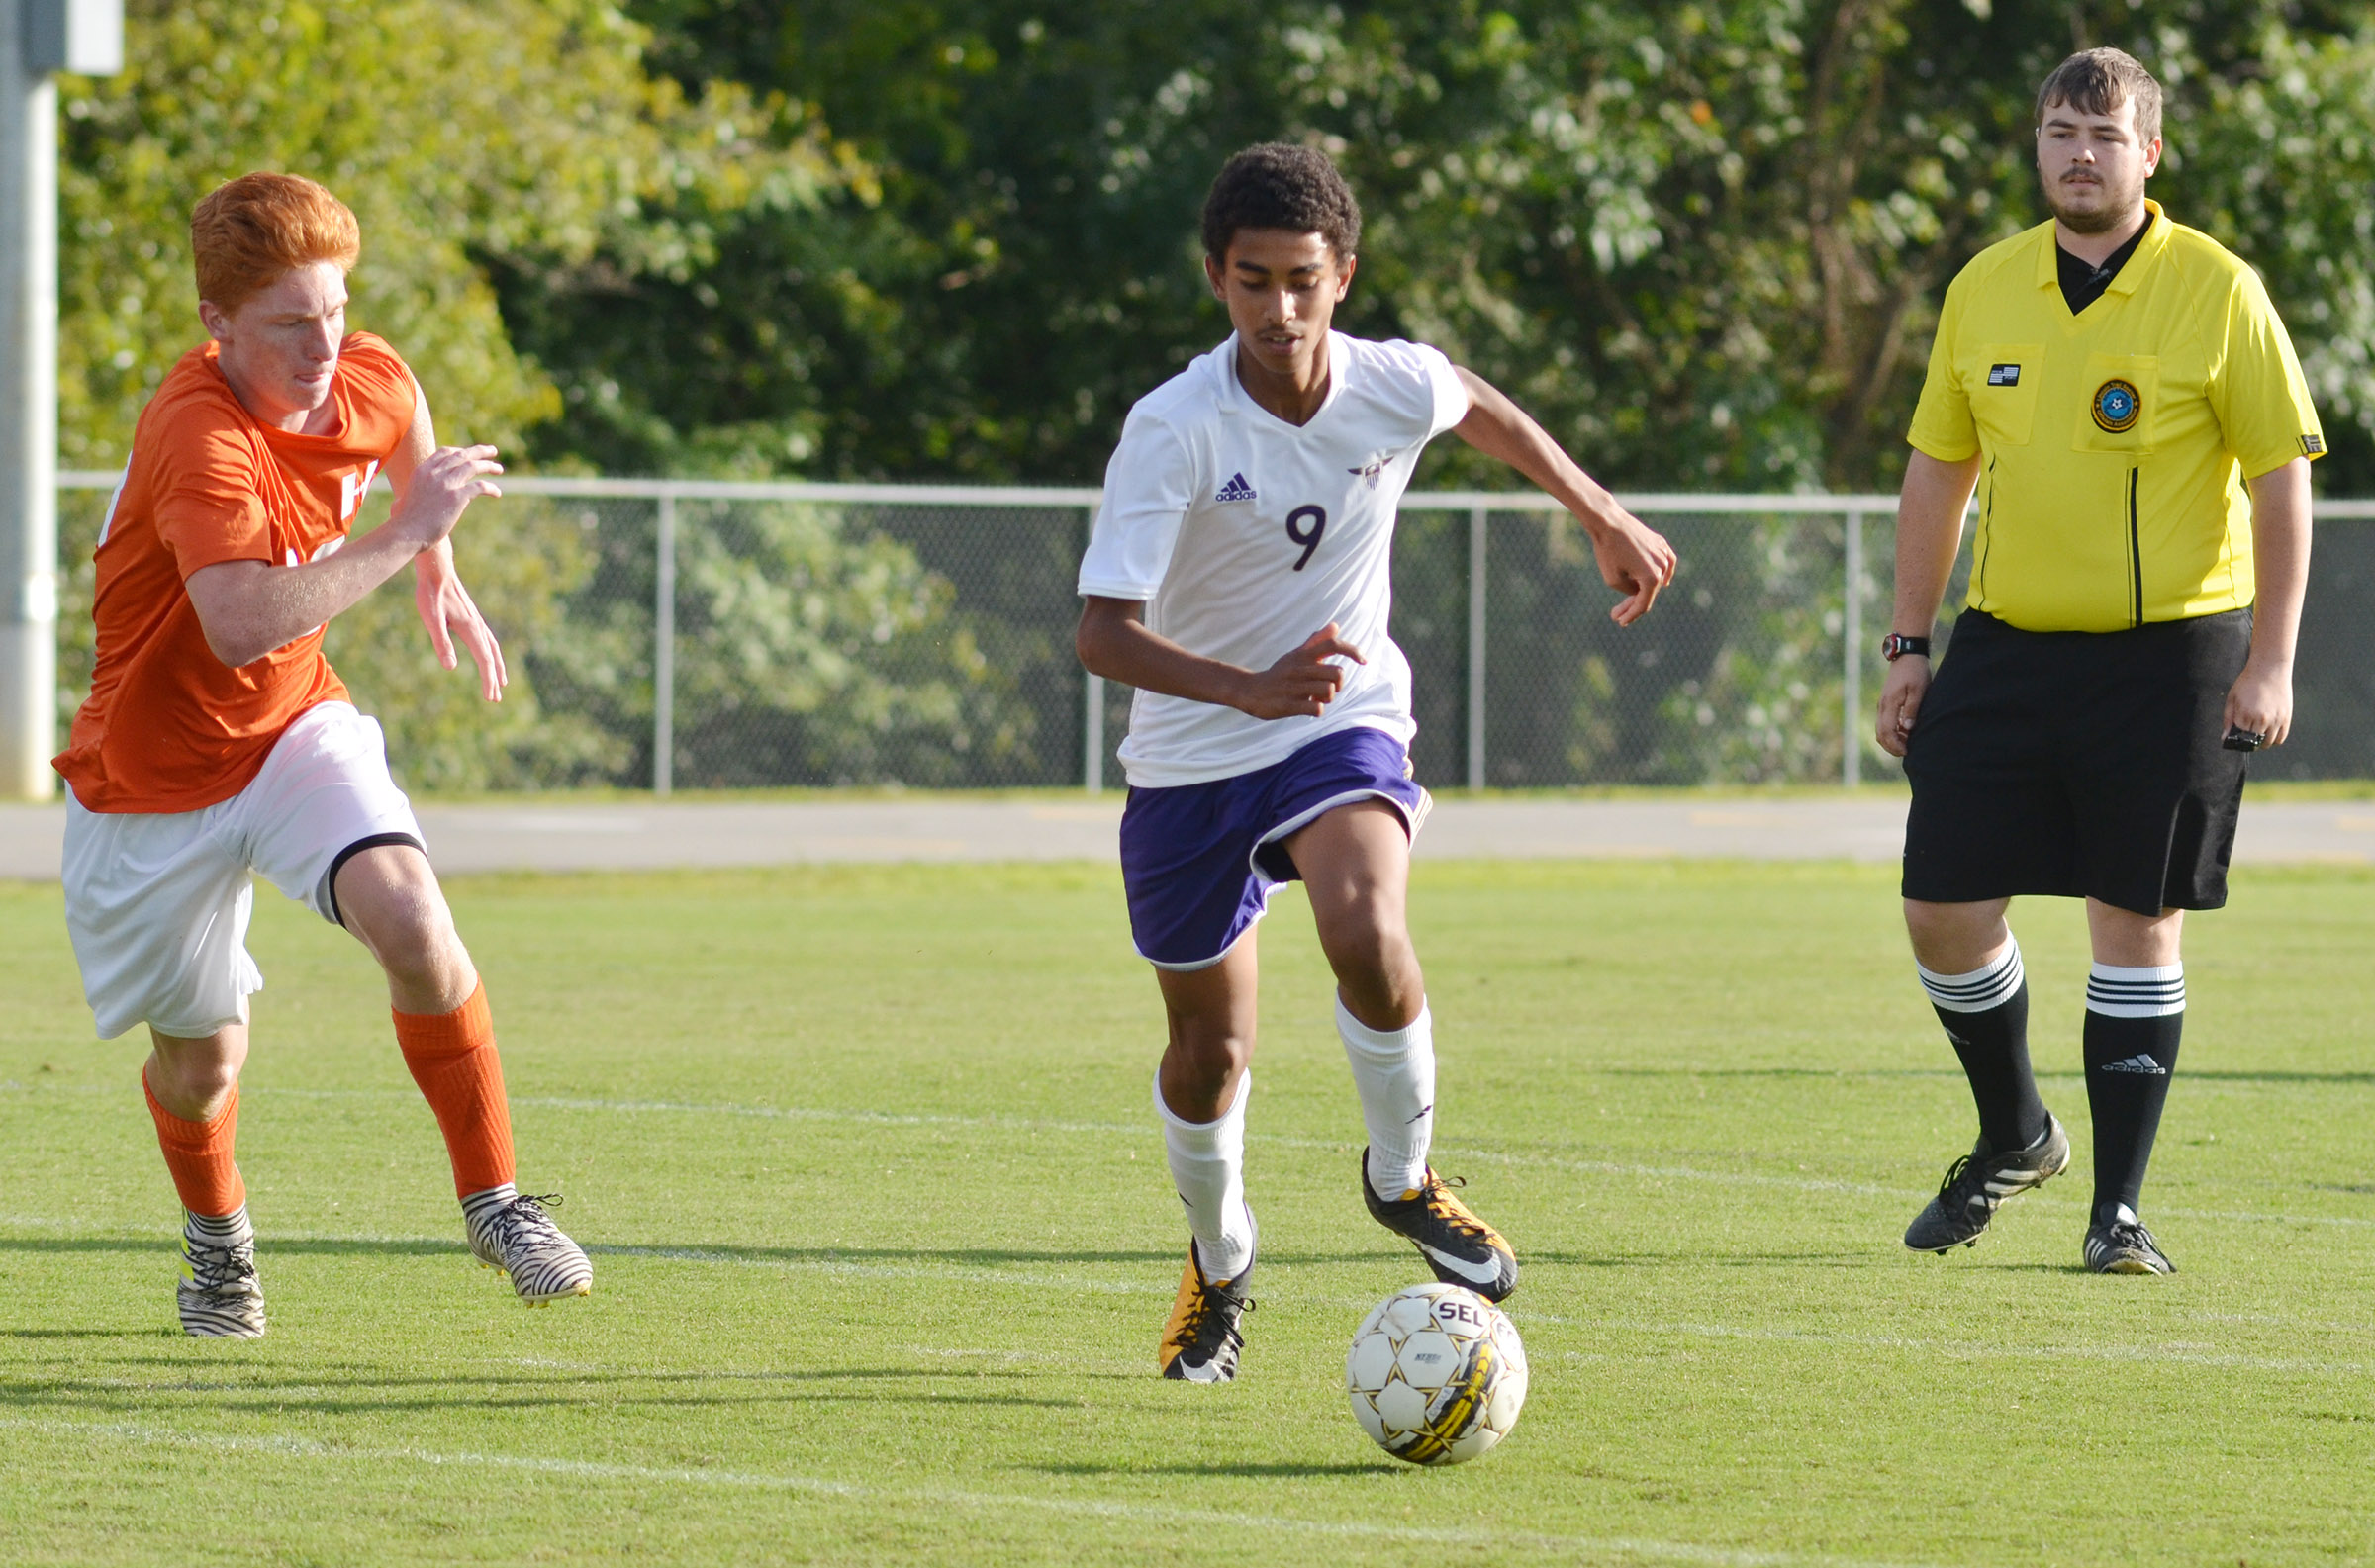 CHS senior Daniel Silva runs the ball down field.